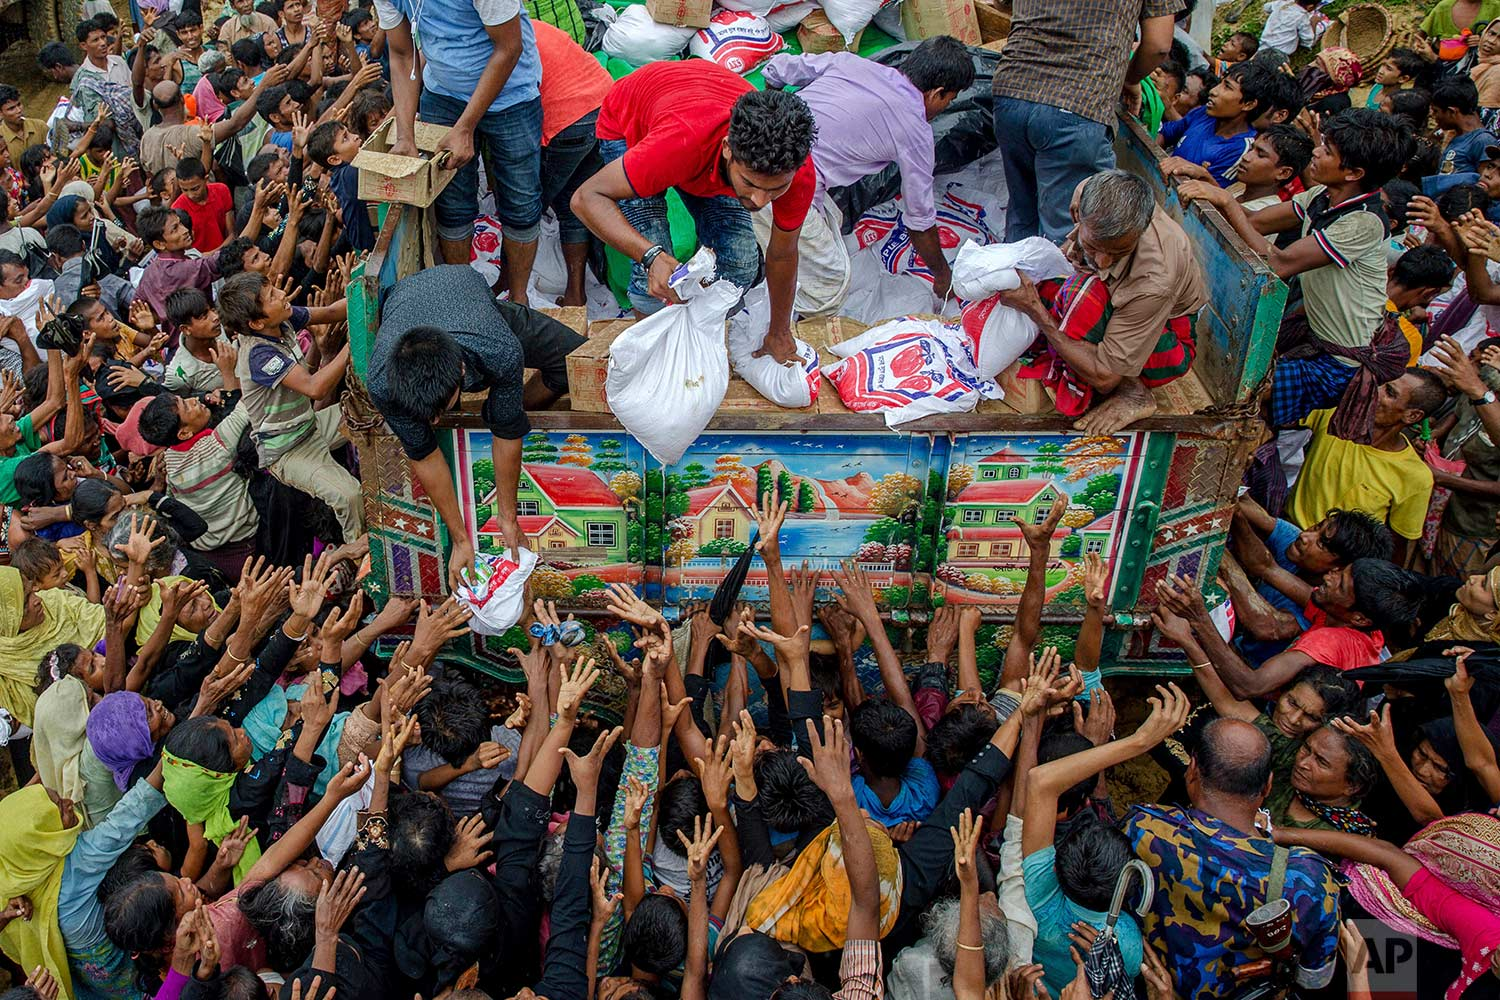 Rohingya Muslims, who travelled from Myanmar into Bangladesh, stretch their arms out to collect food items distributed by aid agencies near Balukhali refugee camp, Bangladesh, Monday, Sept. 18, 2017. (AP Photo/Dar Yasin)